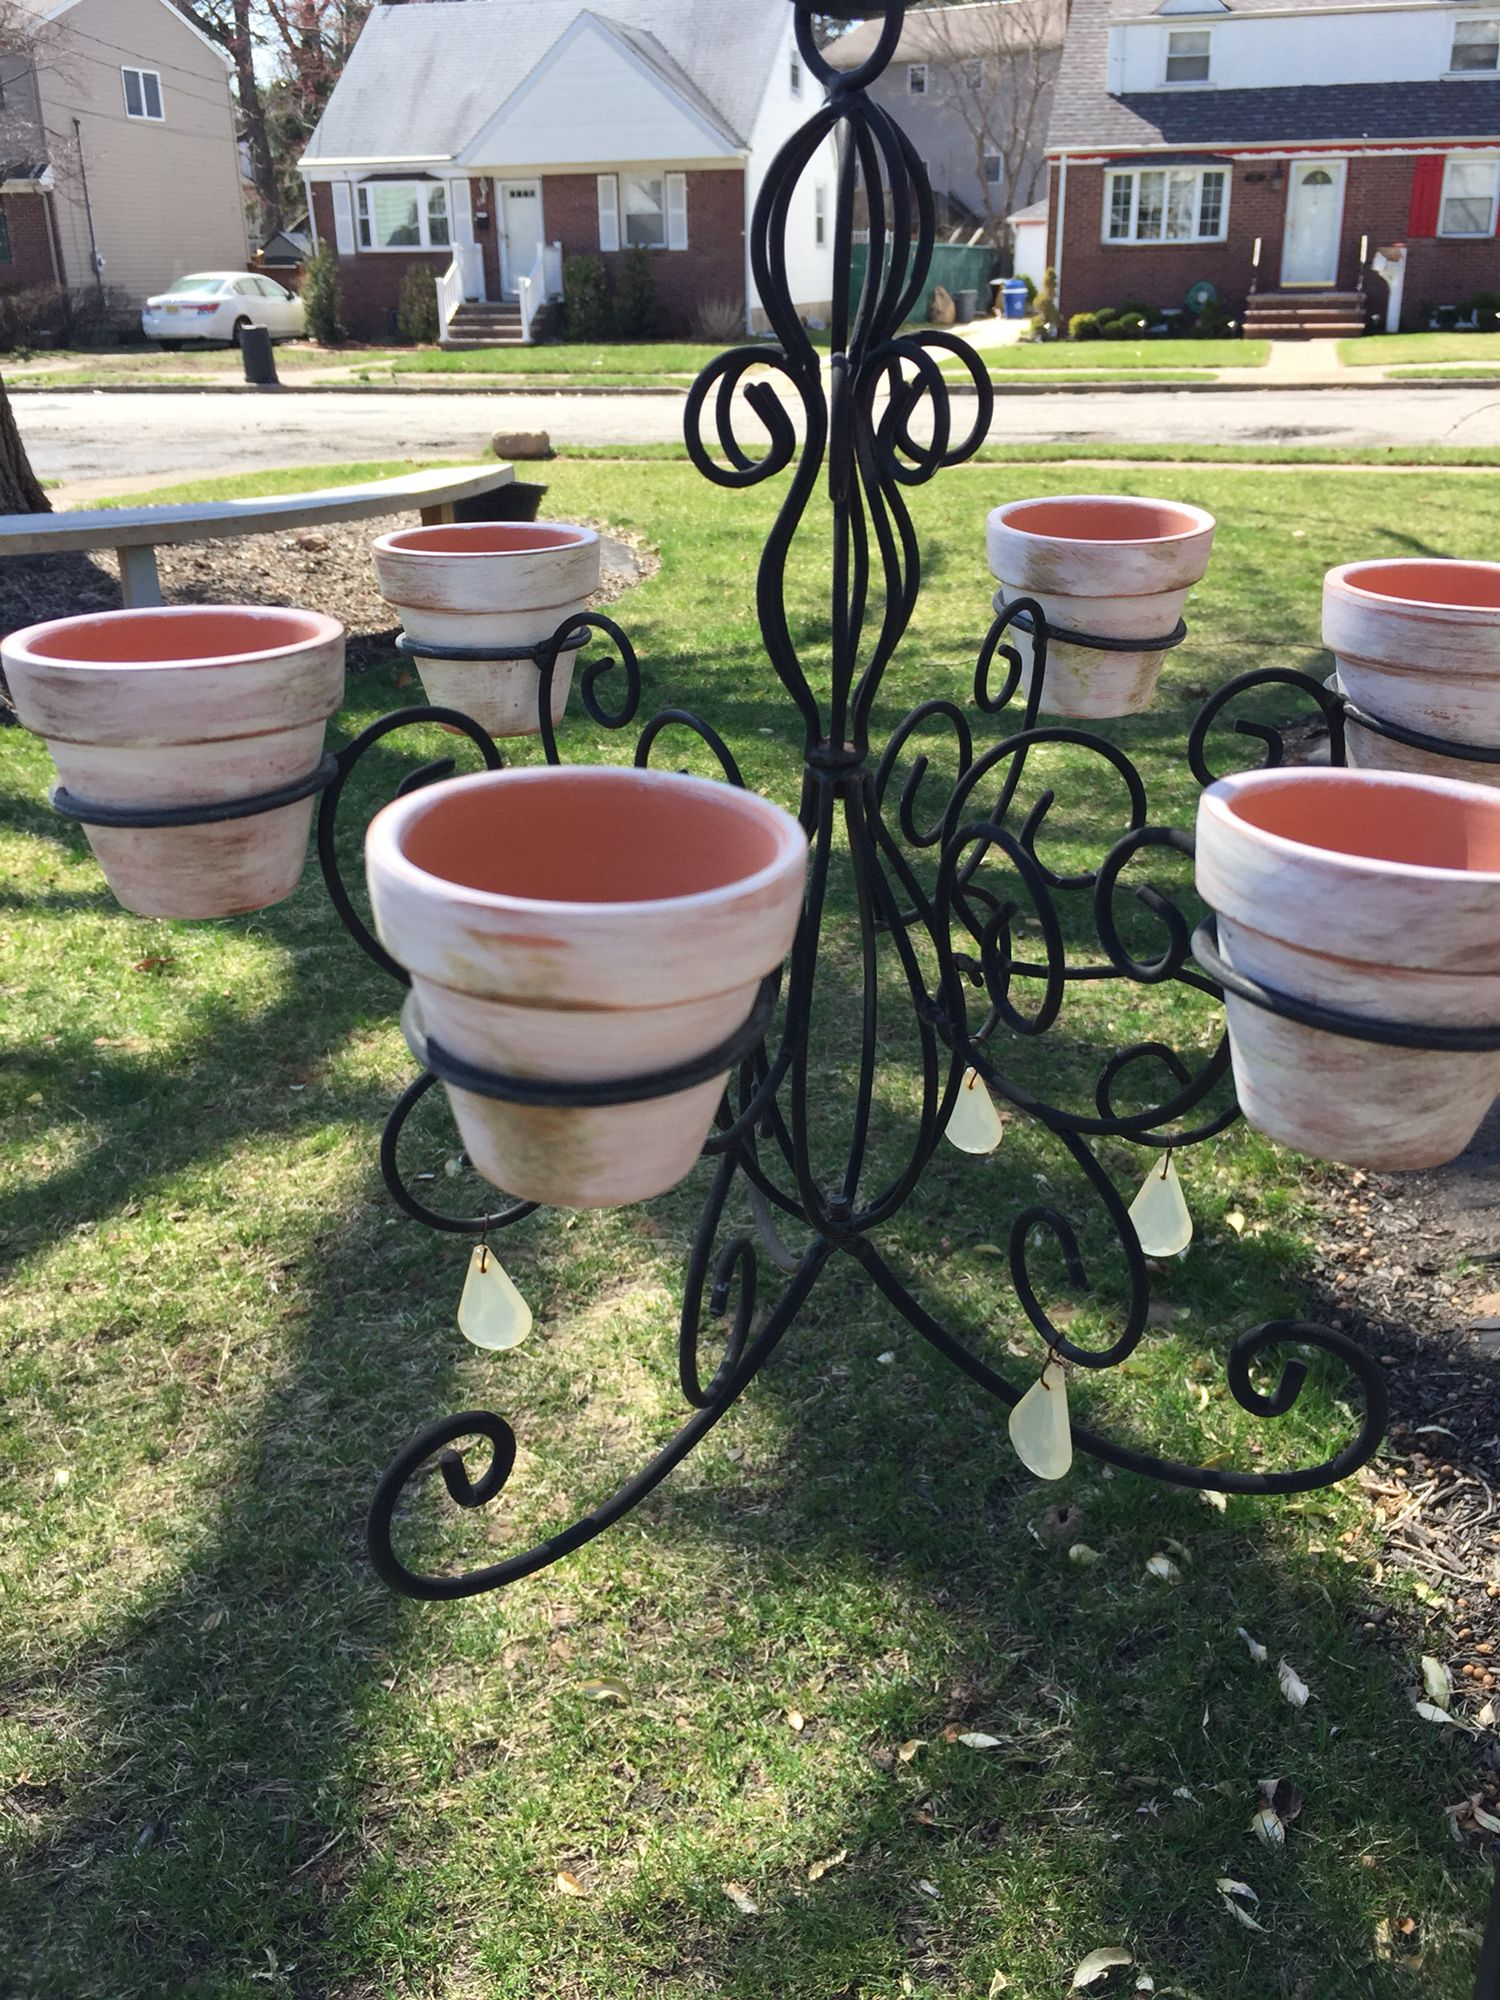 A Candle Chandelier Turned Into A Flower Pot Holder Flower Pot Holder Flower Pots Candle Chandelier